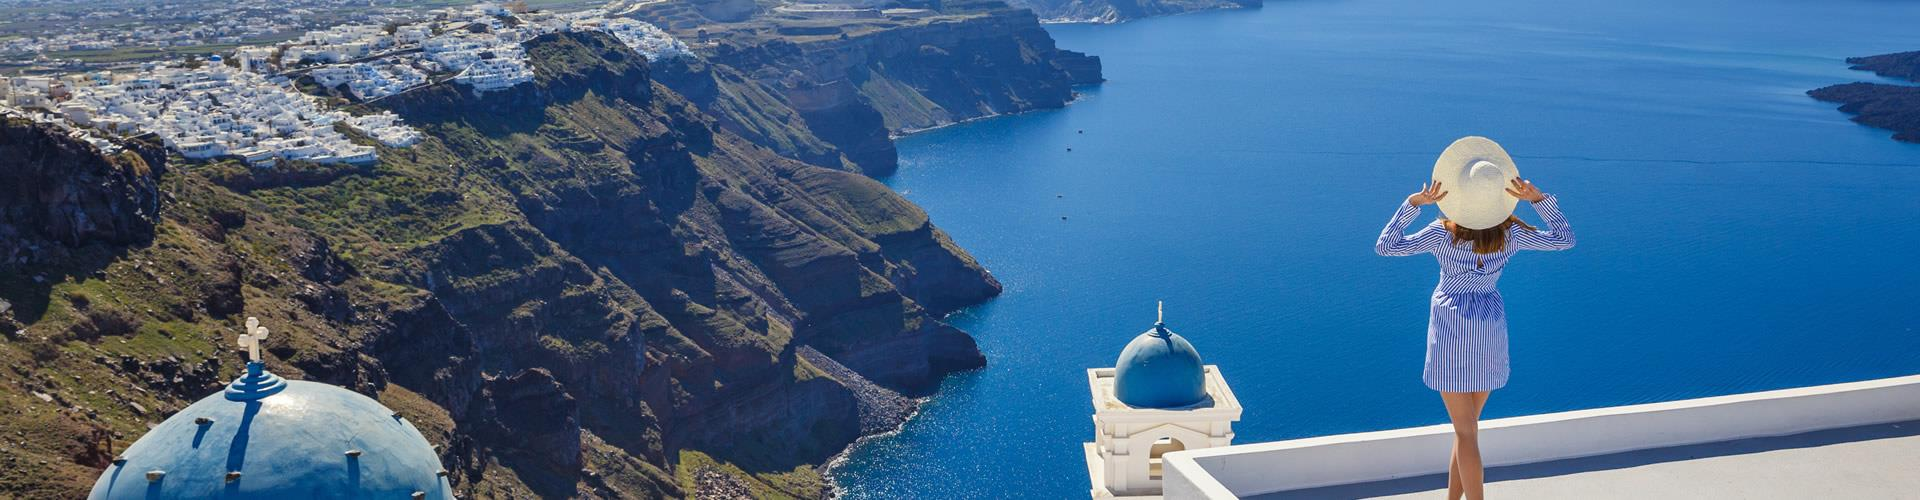 Solo Travel in Santorini: Best Places to Stay & Things to Do